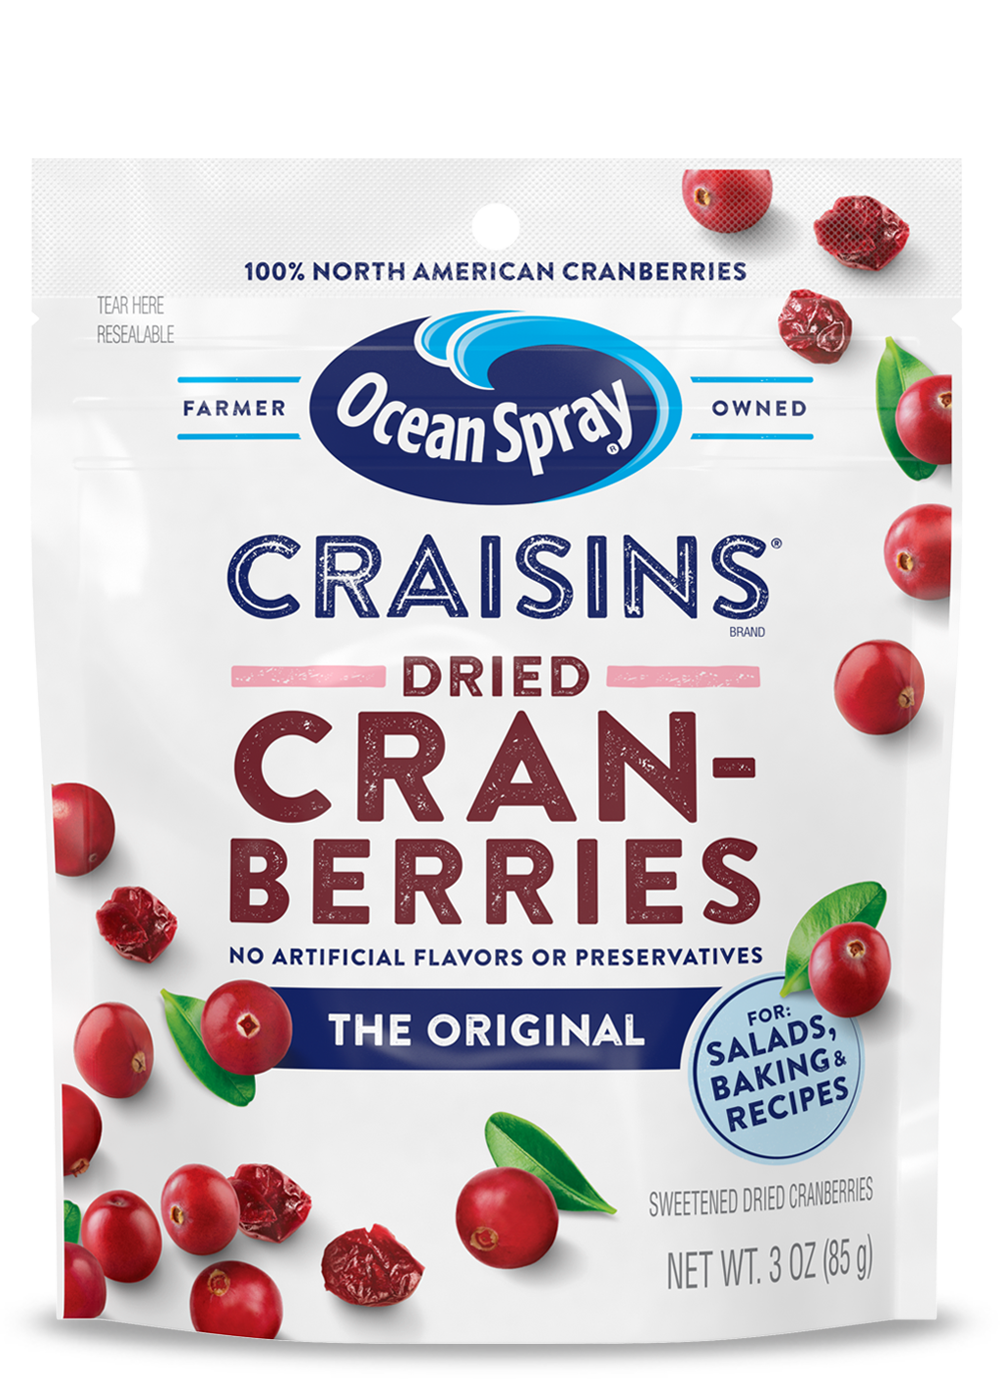 Craisins® Original Dried Cranberries